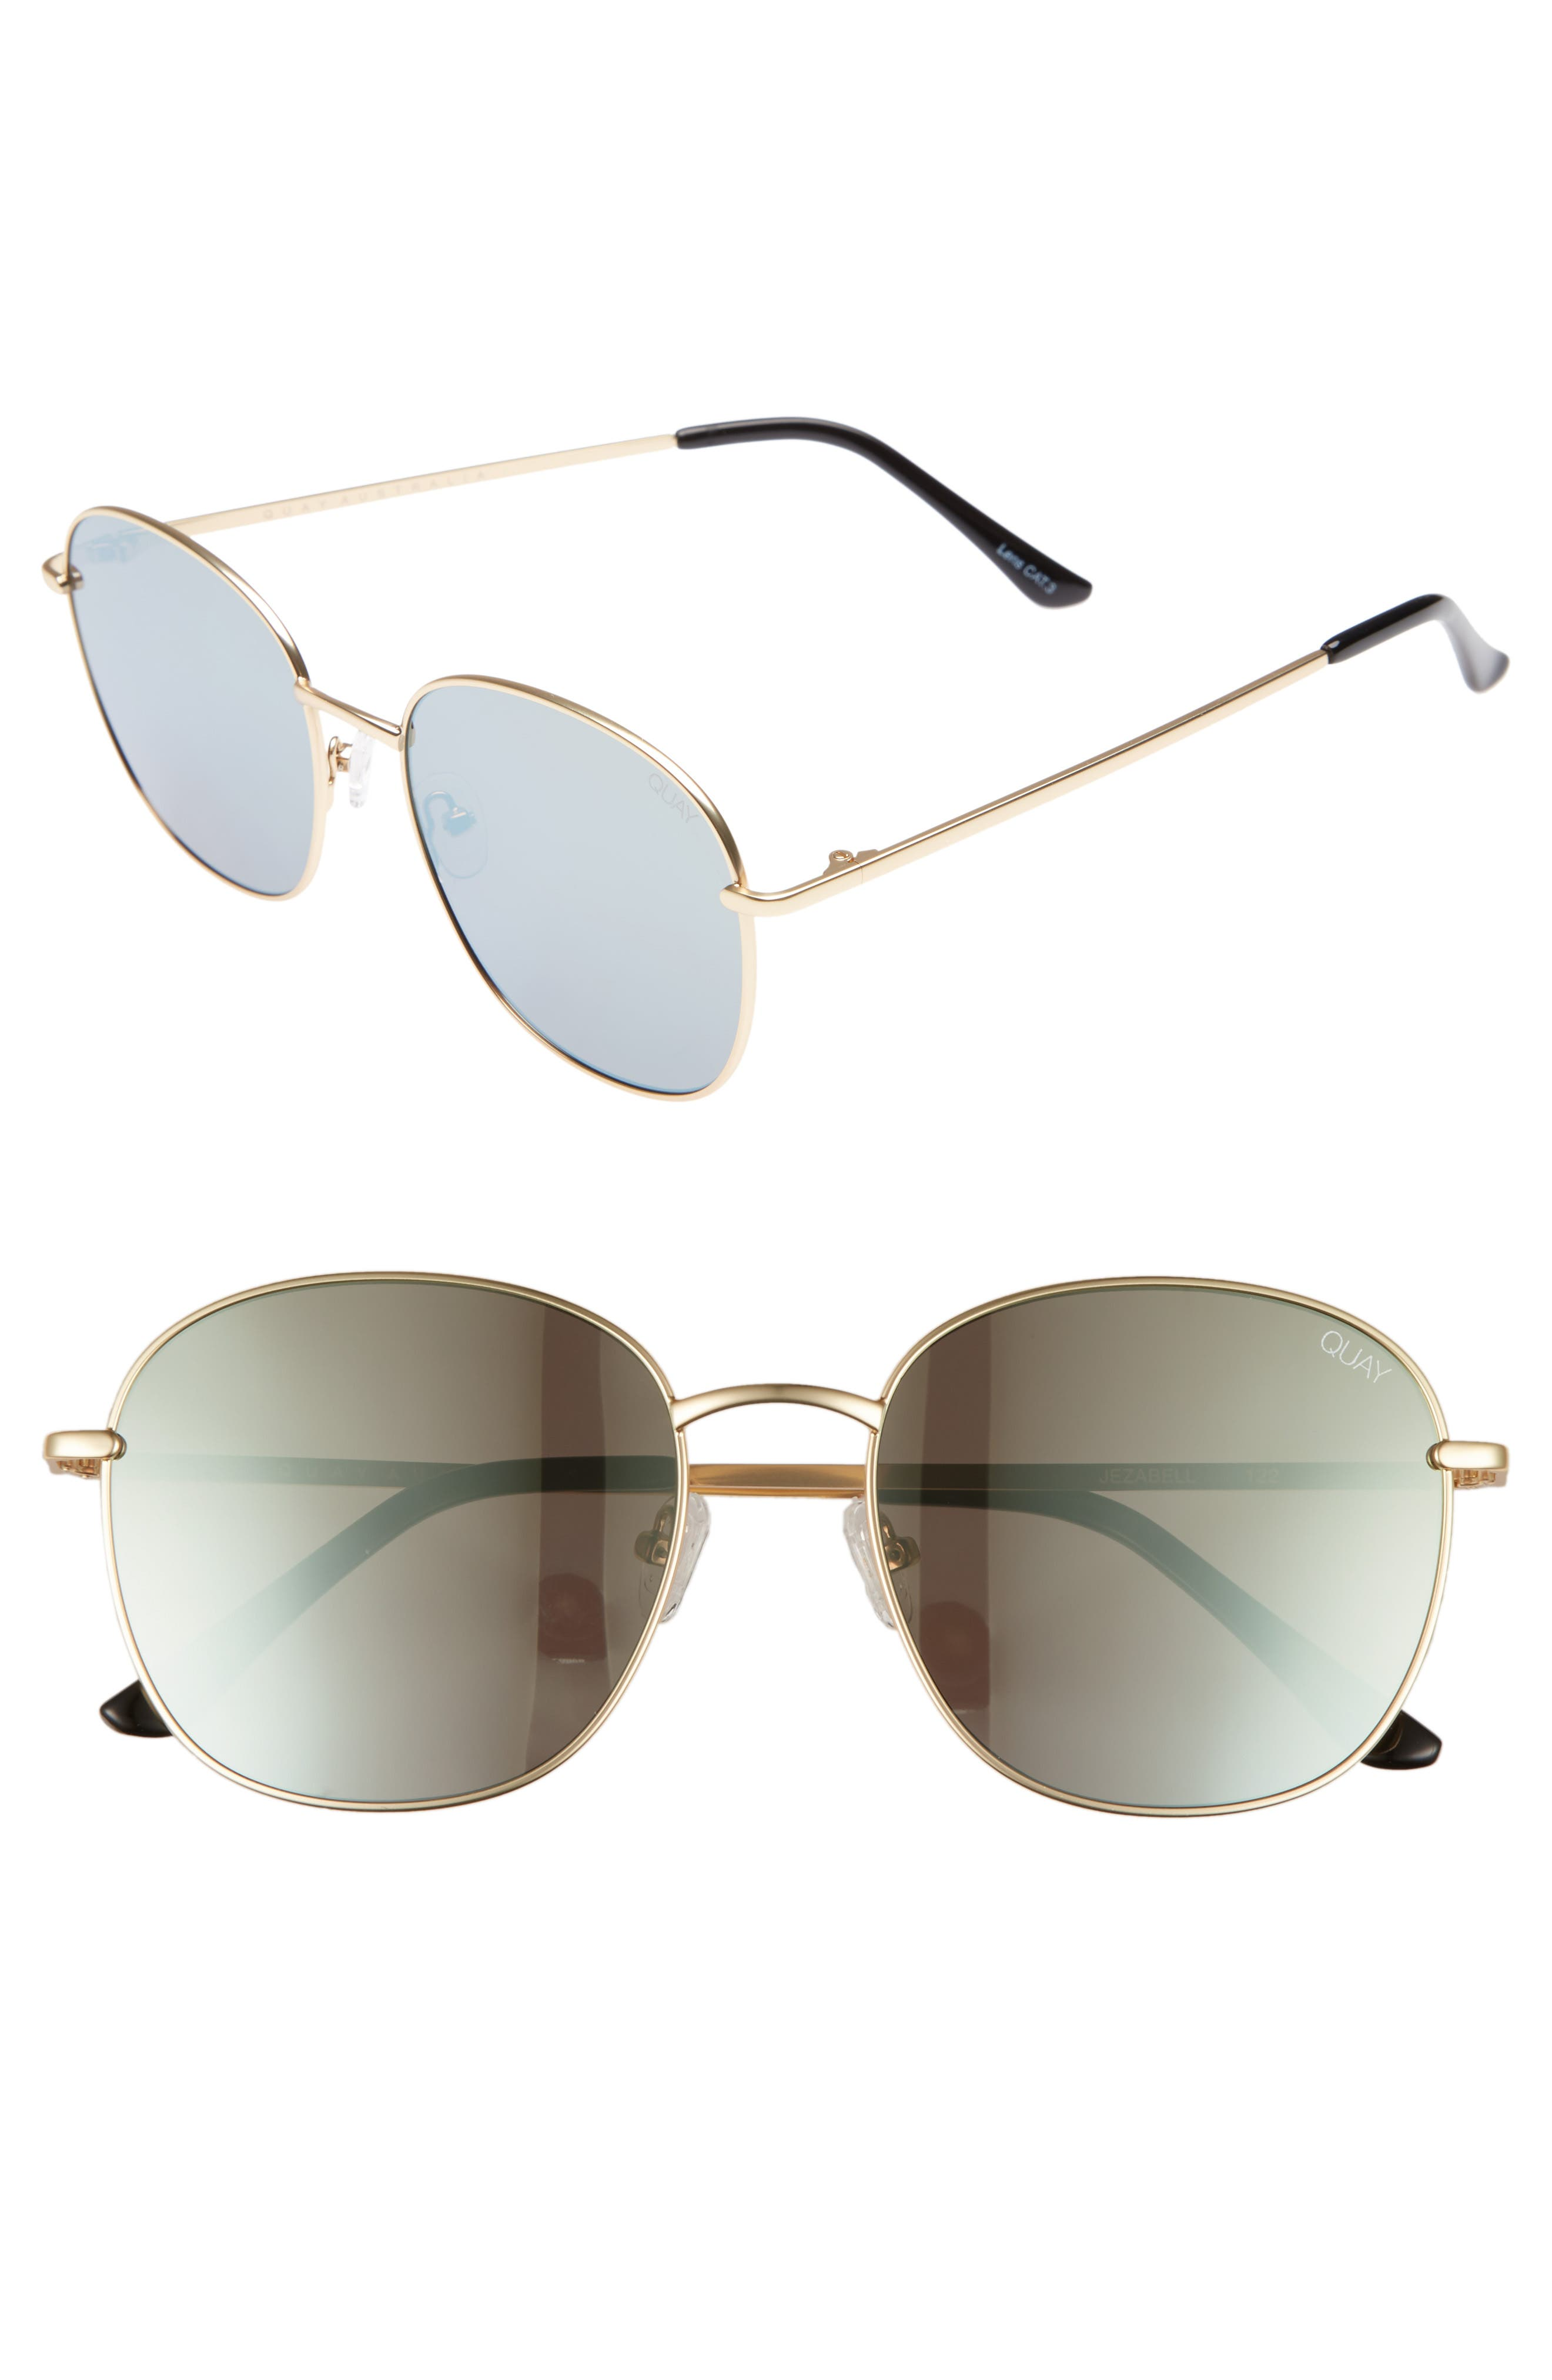 Jezabell 57mm Round Sunglasses,                             Main thumbnail 1, color,                             GOLD/ GOLD